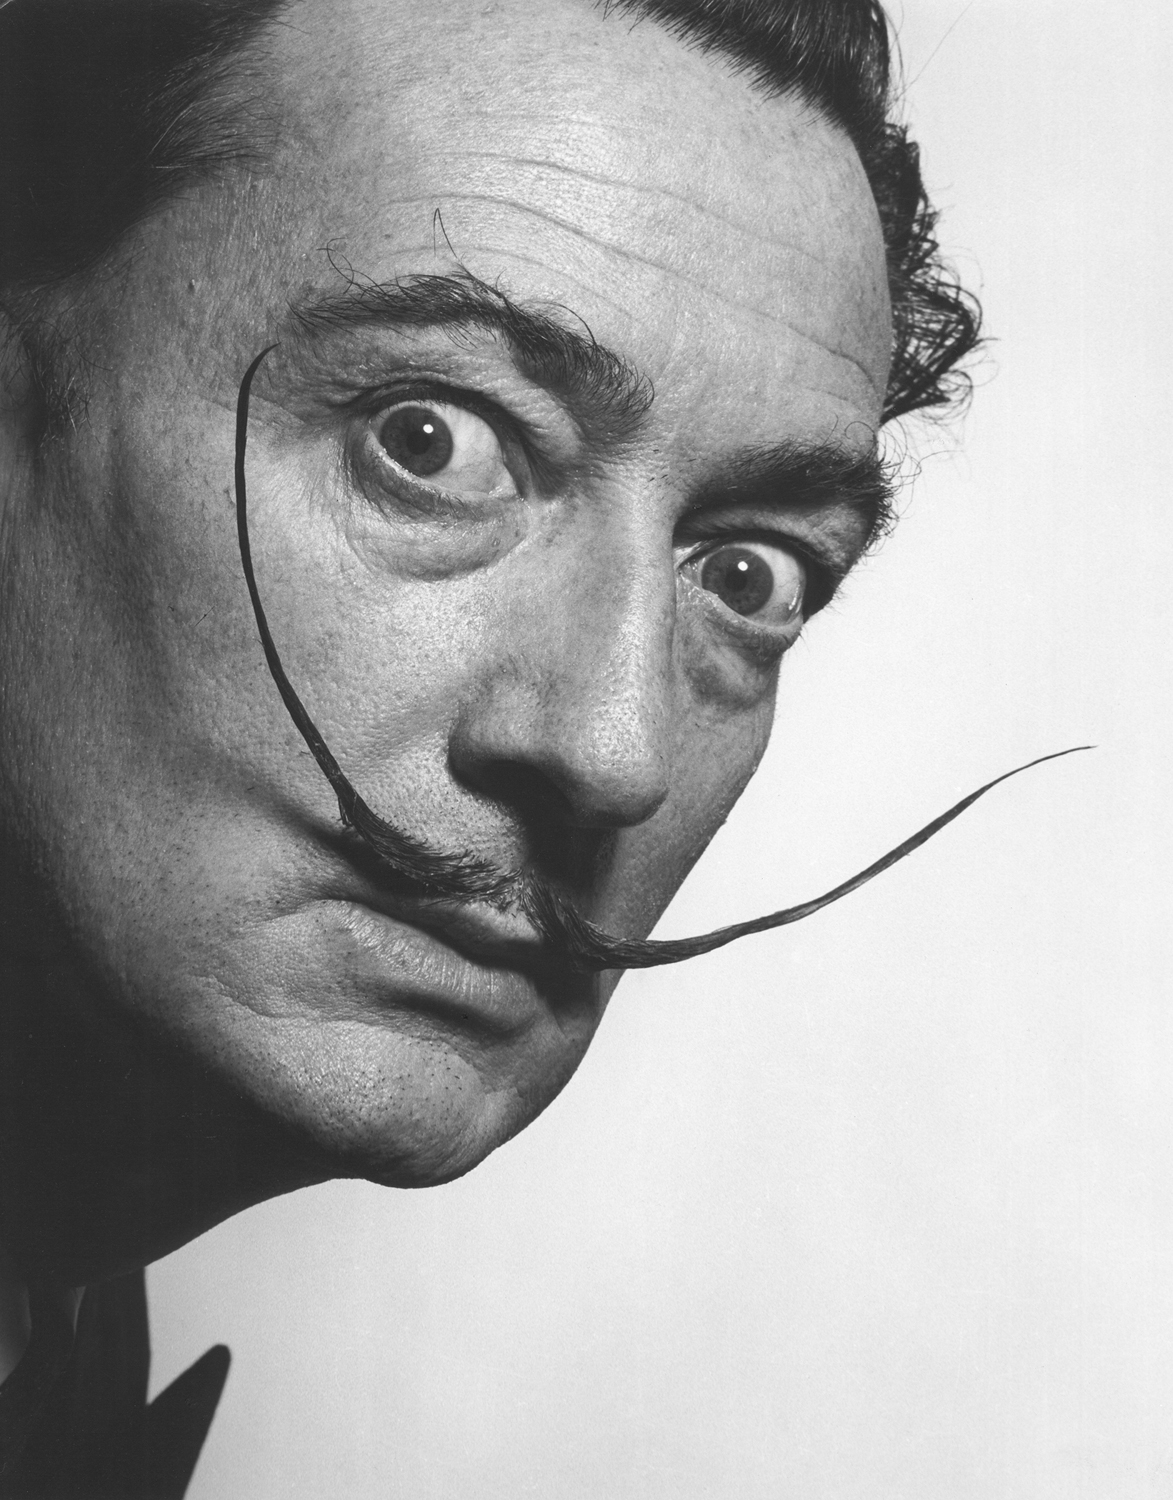 Man Steals Dali Painting in NYC